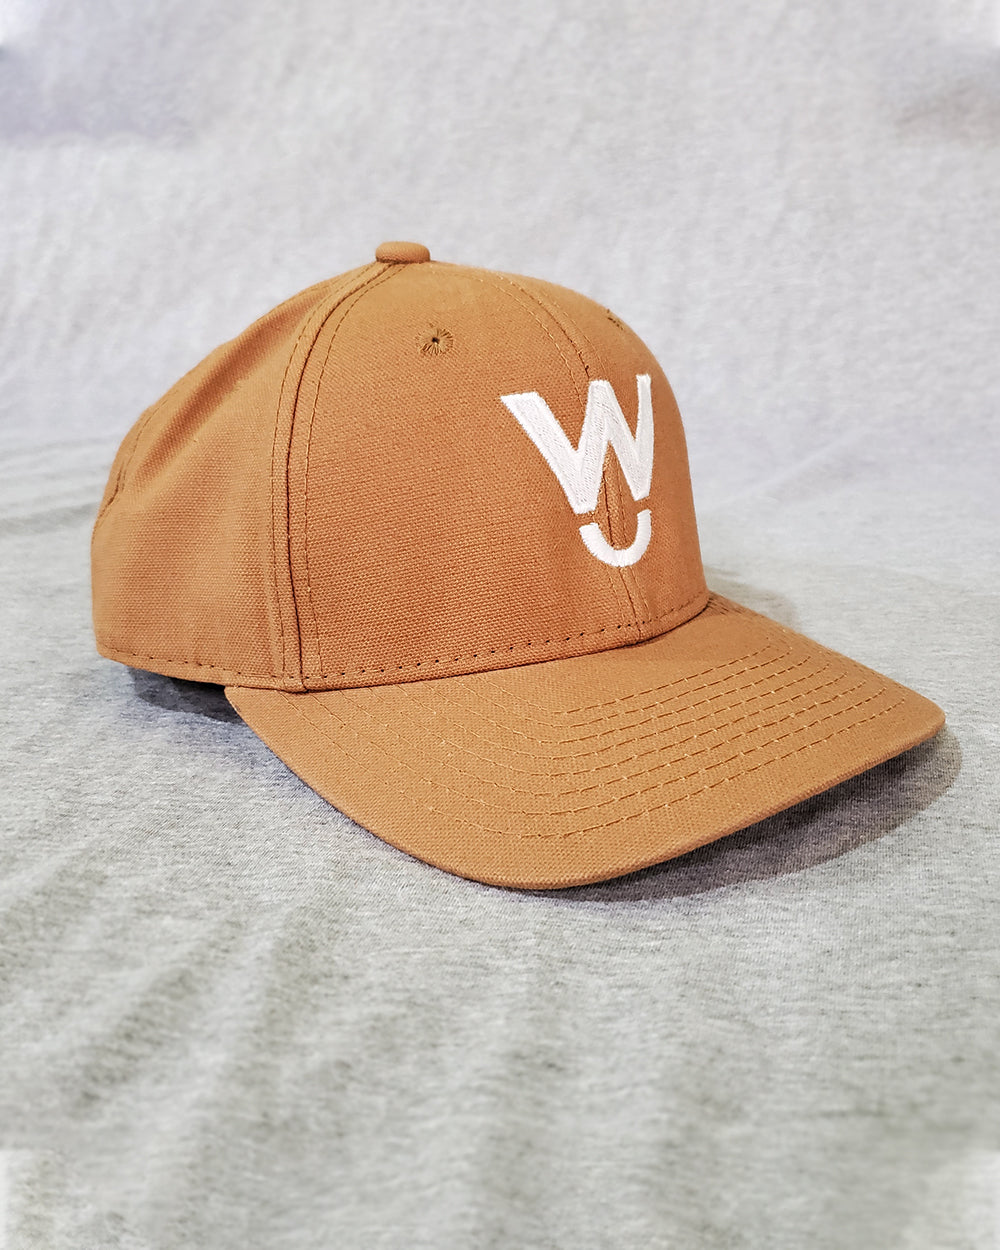 White Walter W (Tan Hat)